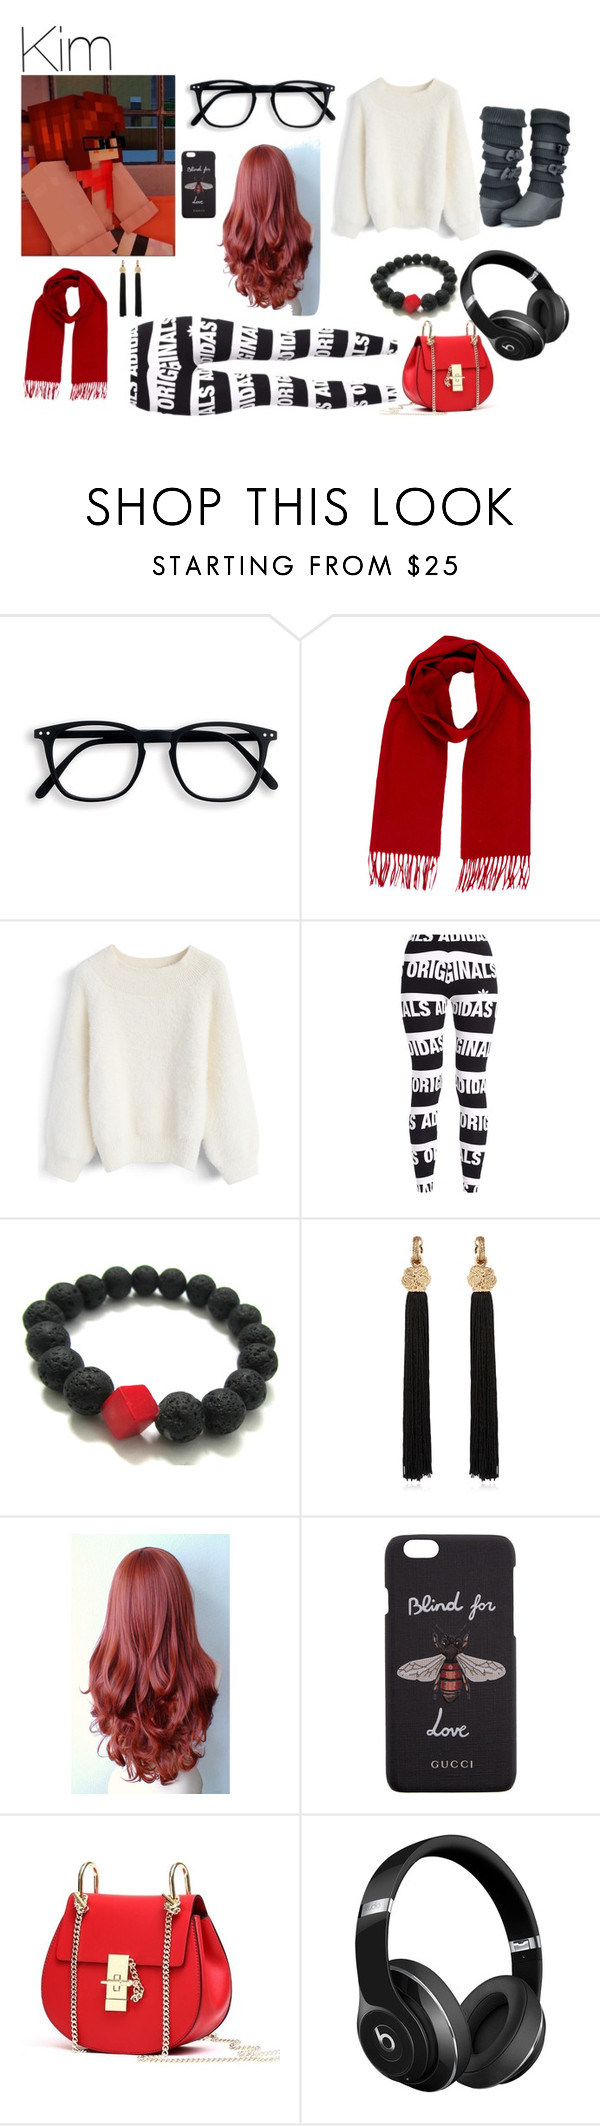 """Kim- Aphmau's Mysreet"" by darkwolf180 ❤ liked on Polyvore featuring Yves Saint Laurent, Chicwish, adidas Originals, Gucci and Beats by Dr. Dre"